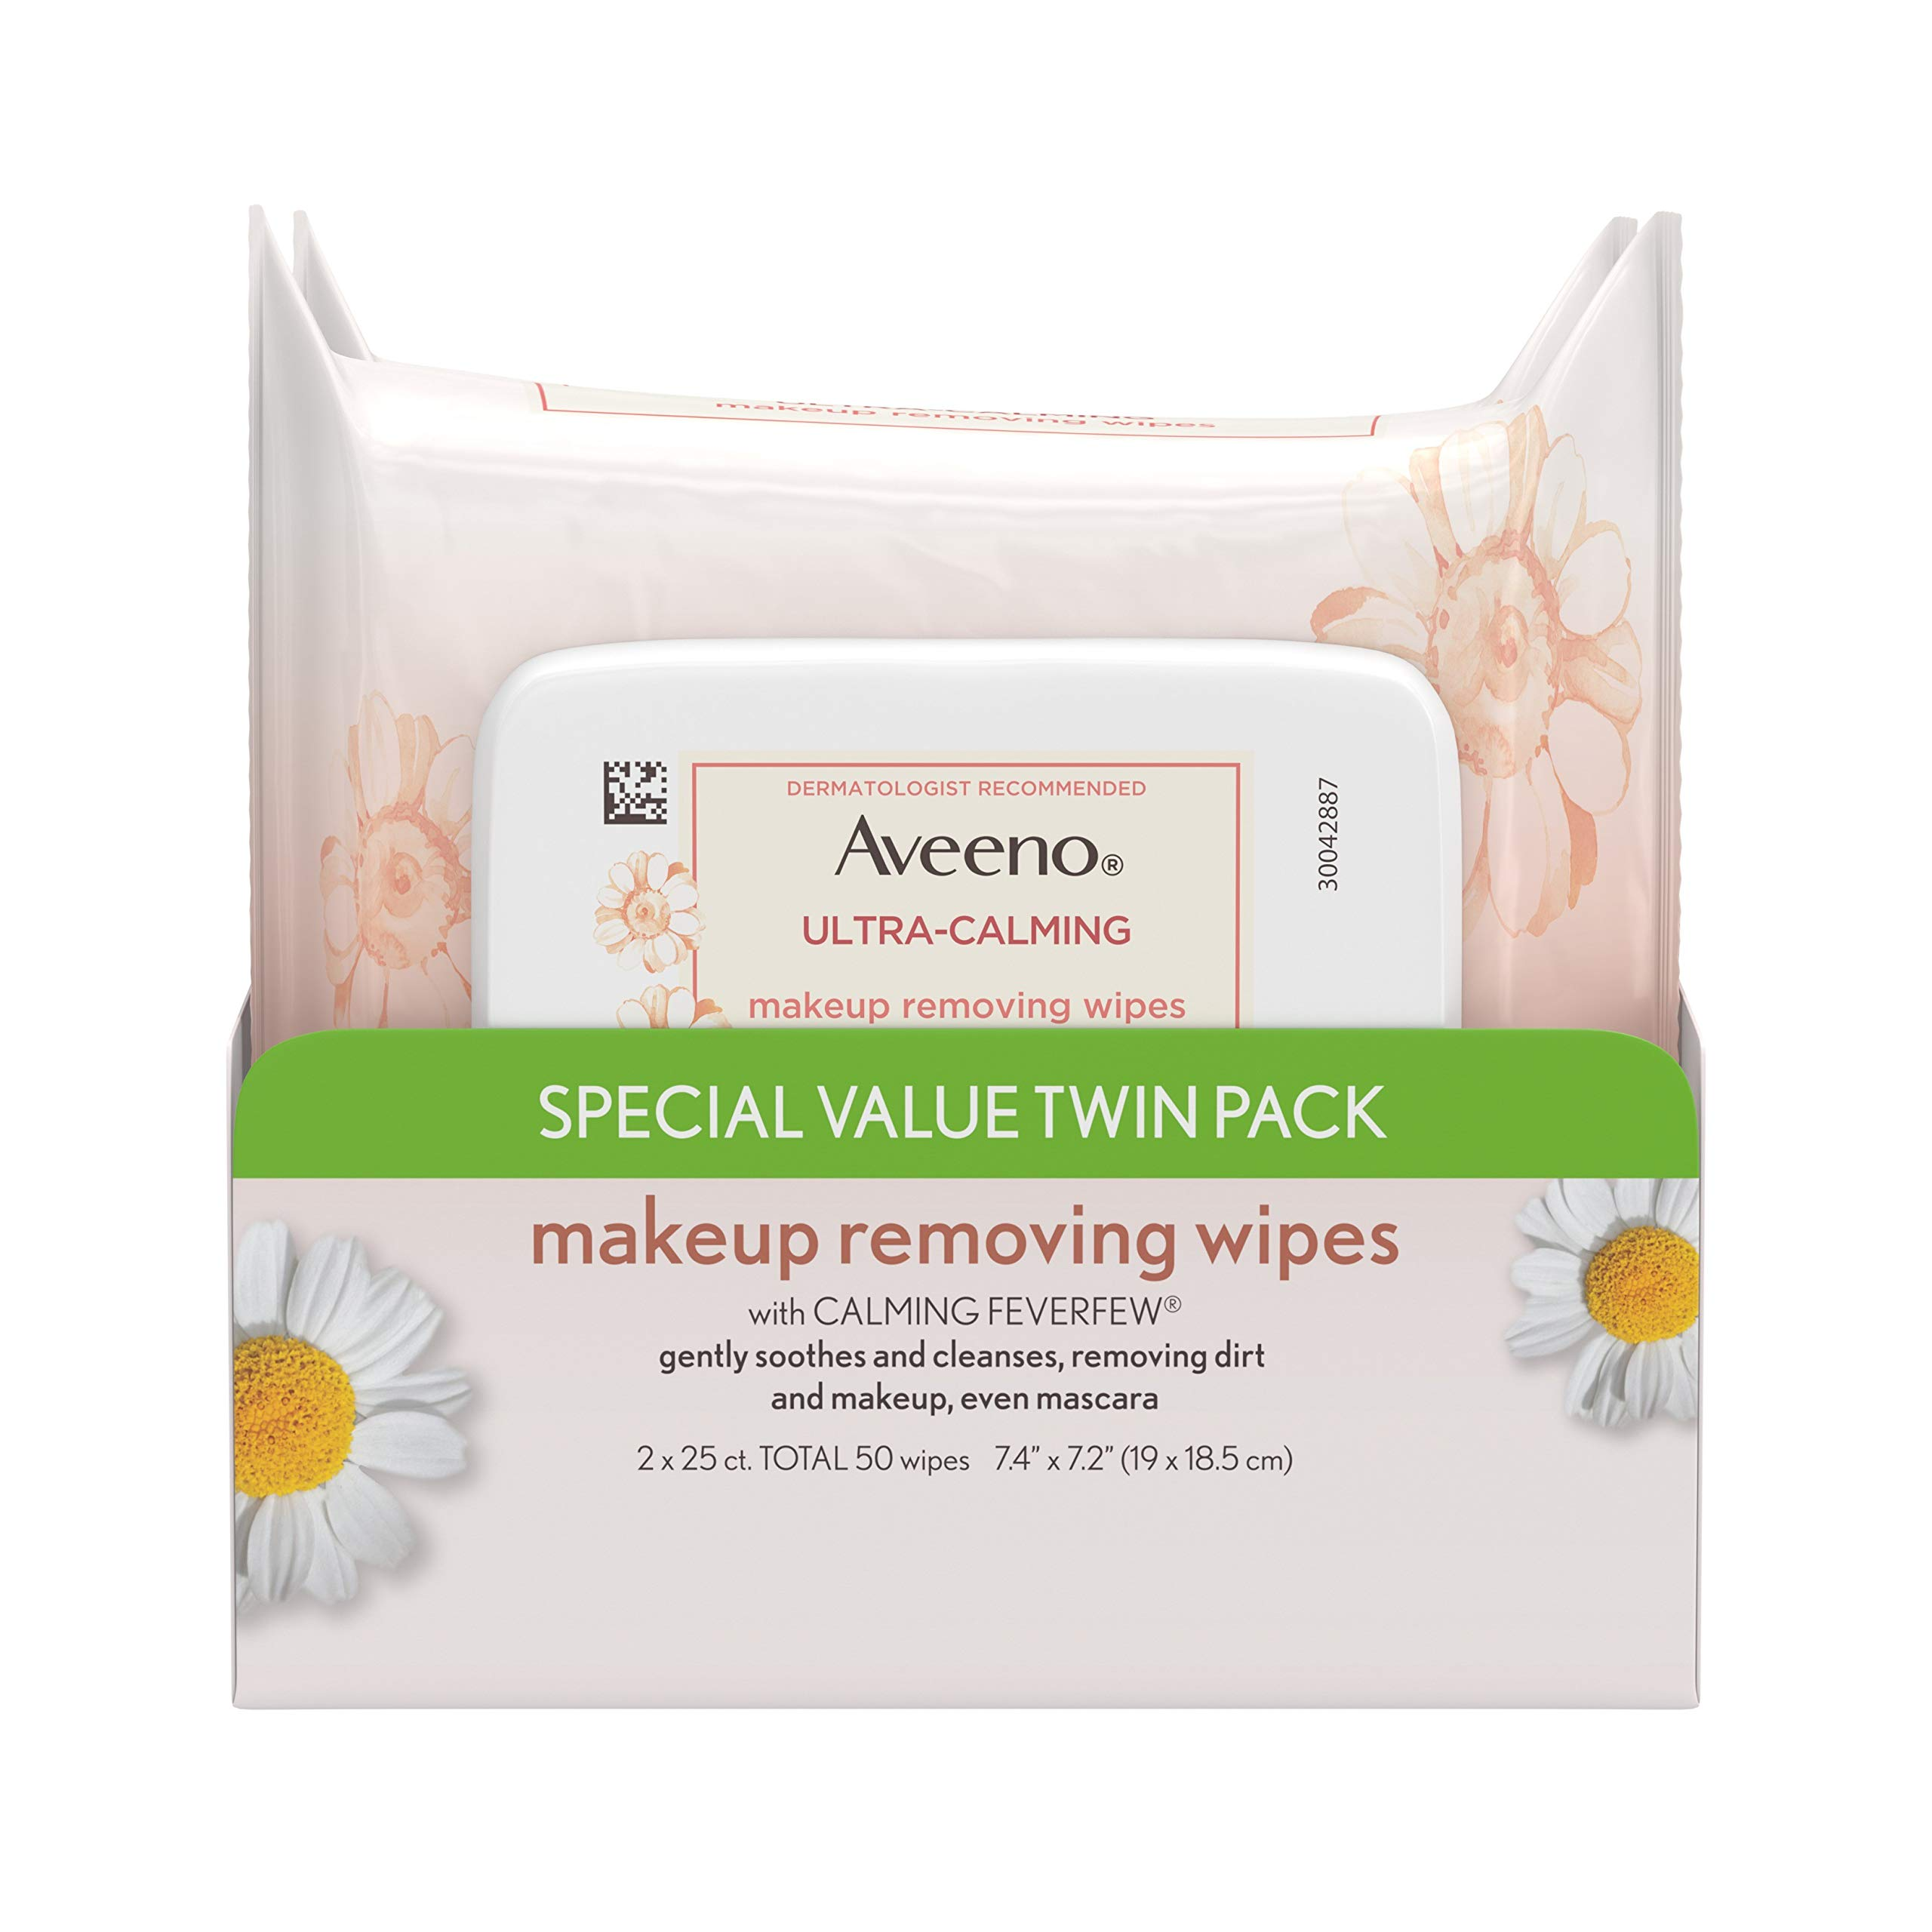 Aveeno Ultra-Calming Cleansing Oil-Free Makeup Removing Wipes for Sensitive Skin, 25 Count, Twin Pack by Aveeno